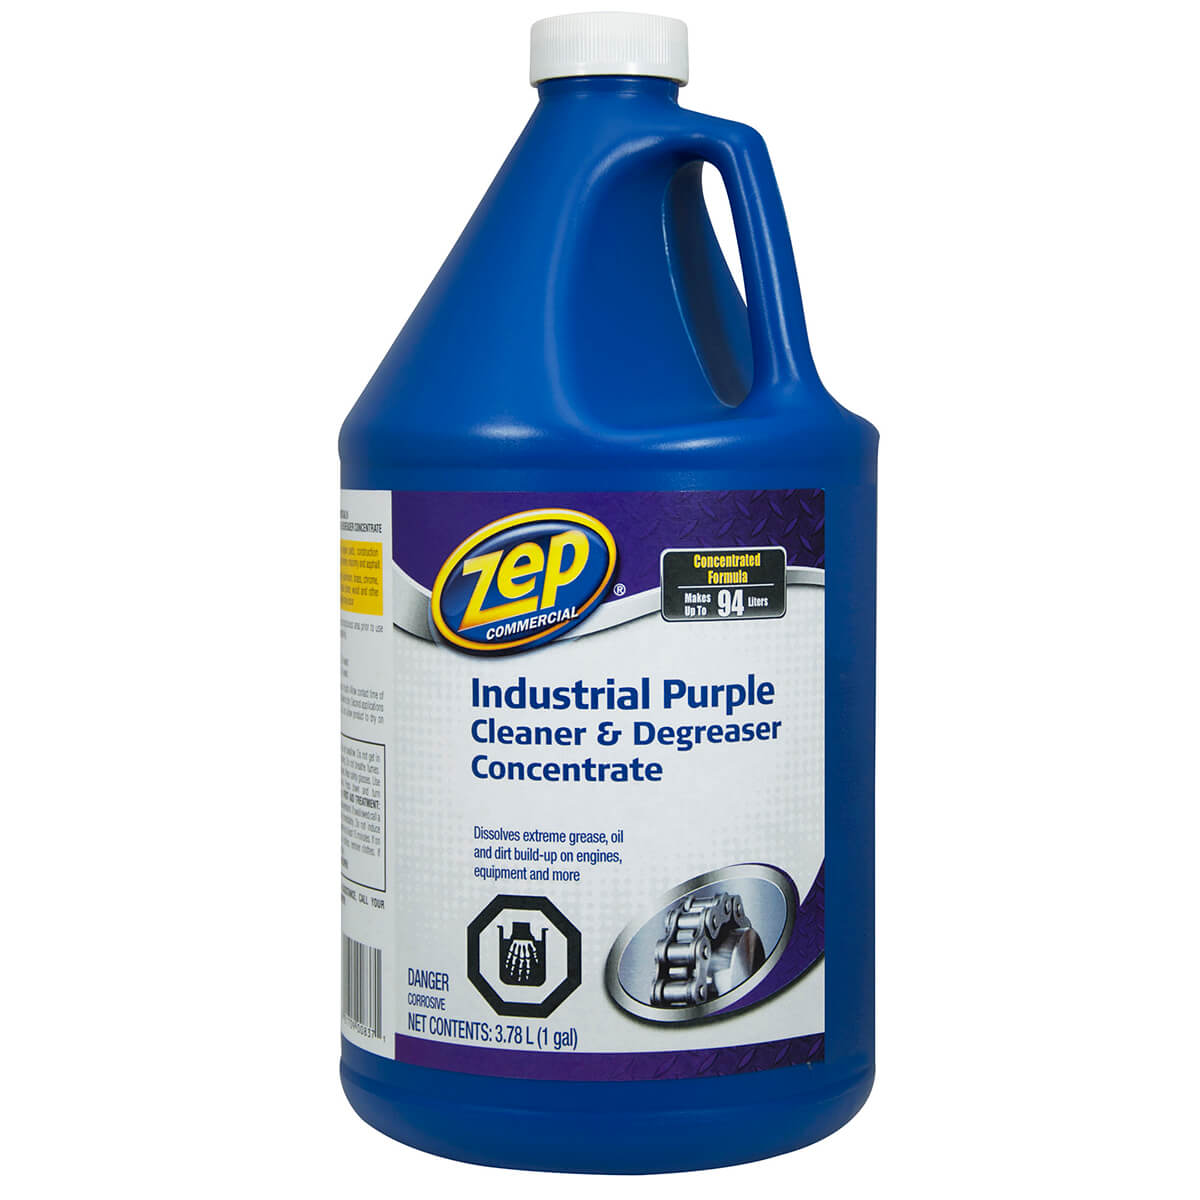 Zep Commercial Industrial Purple Cleaner & Degreaser Concentrate 3.78 L - CA0856128